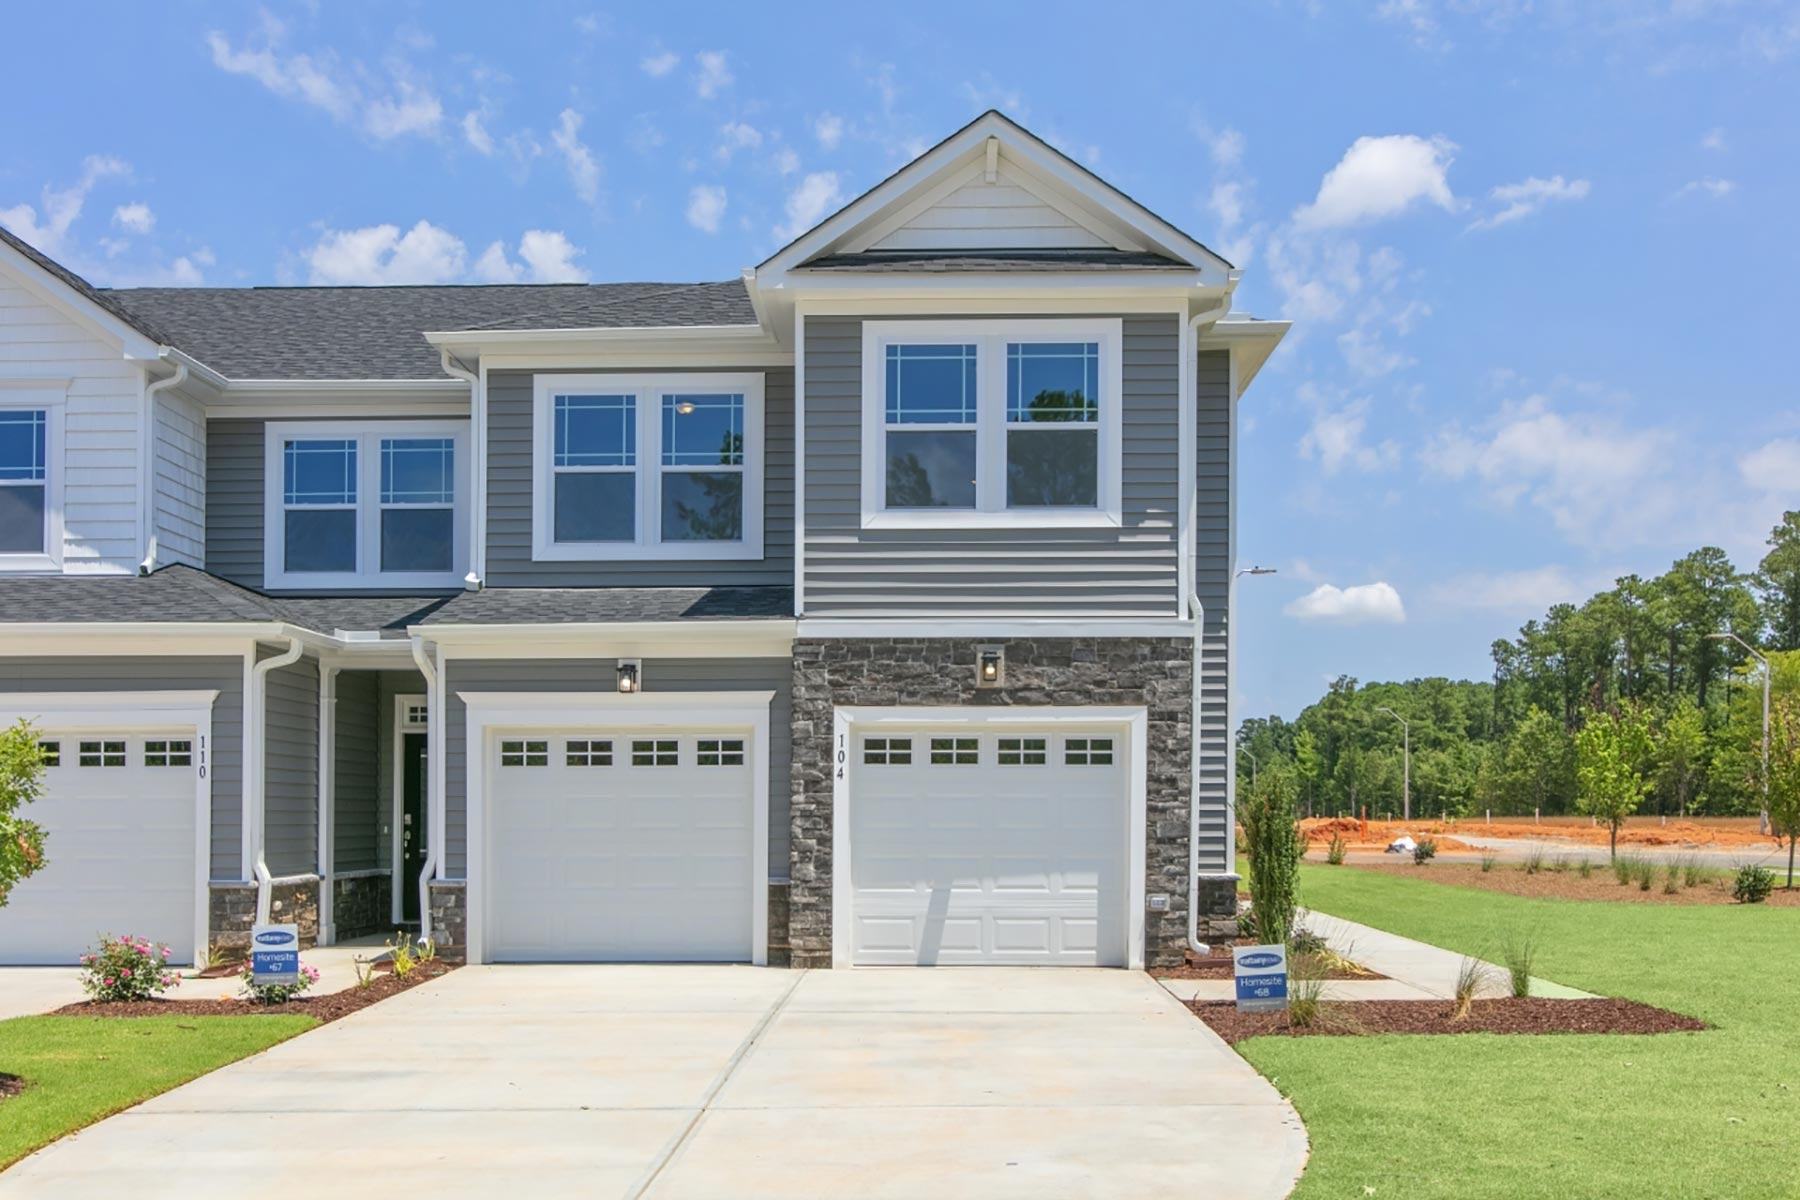 Clifton Plan Elevation Front at Minglewood Townhomes in Garner North Carolina by Mattamy Homes